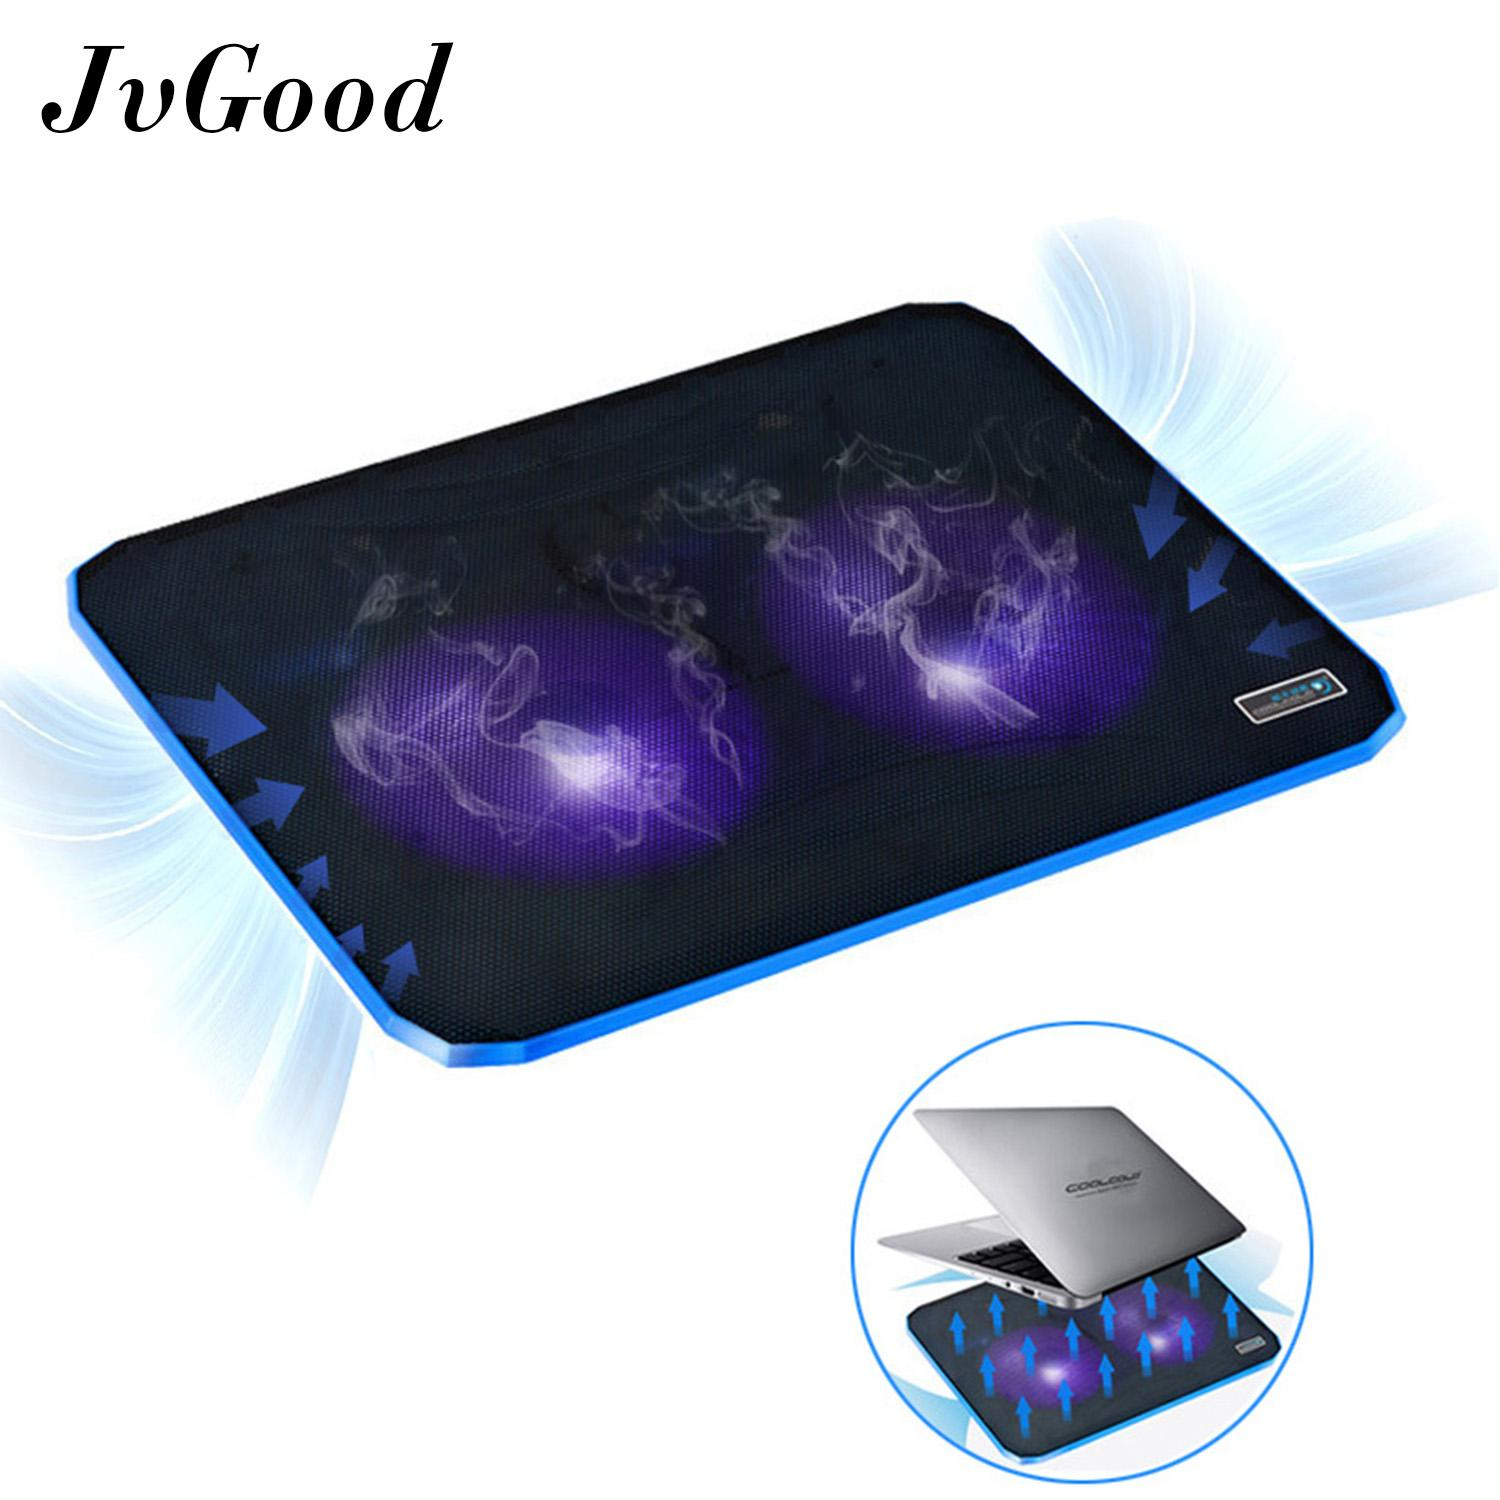 JvGood Laptop Cooling Pads Stands Ultra Slim Laptop Cooler Lightweight Chill Portable Notebook Mat with 2 Heavy Duty Fans USB Powered with LED Lights for 10 - 17 Notebook Computer